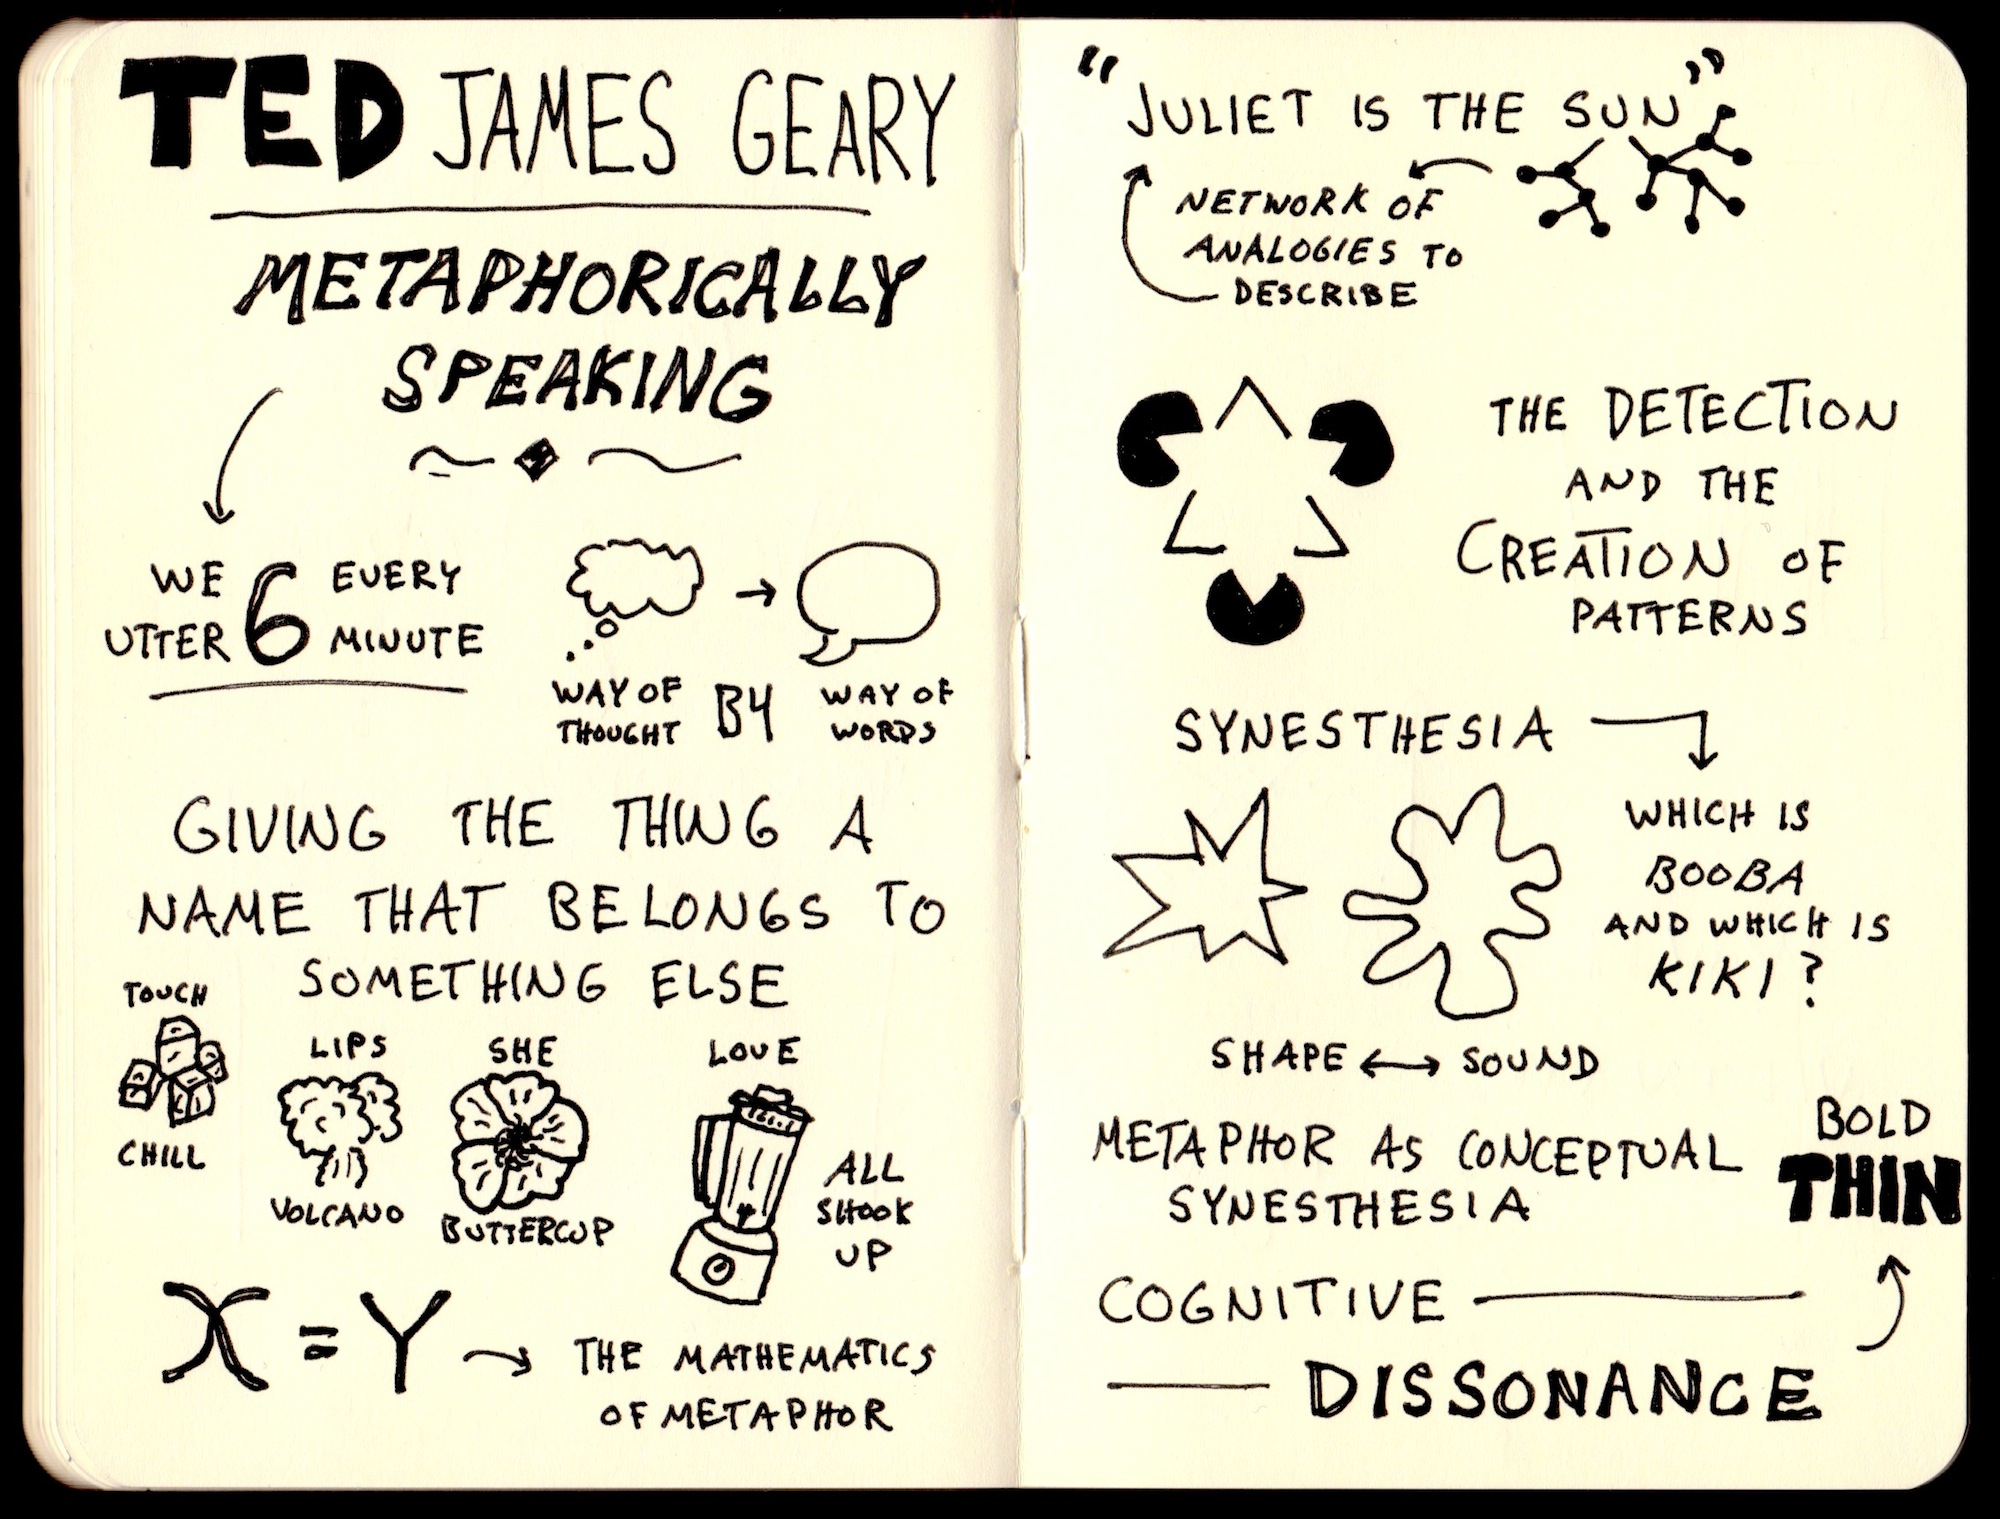 TED James Geary Metaphorically Speaking Sketchnotes (1) - Doug Neill - touch chill, lips volcano, she buttercup, love all shook up, juliet is the sun, analogy, detection and creation of patterns, synesthesia, cognitive dissonance